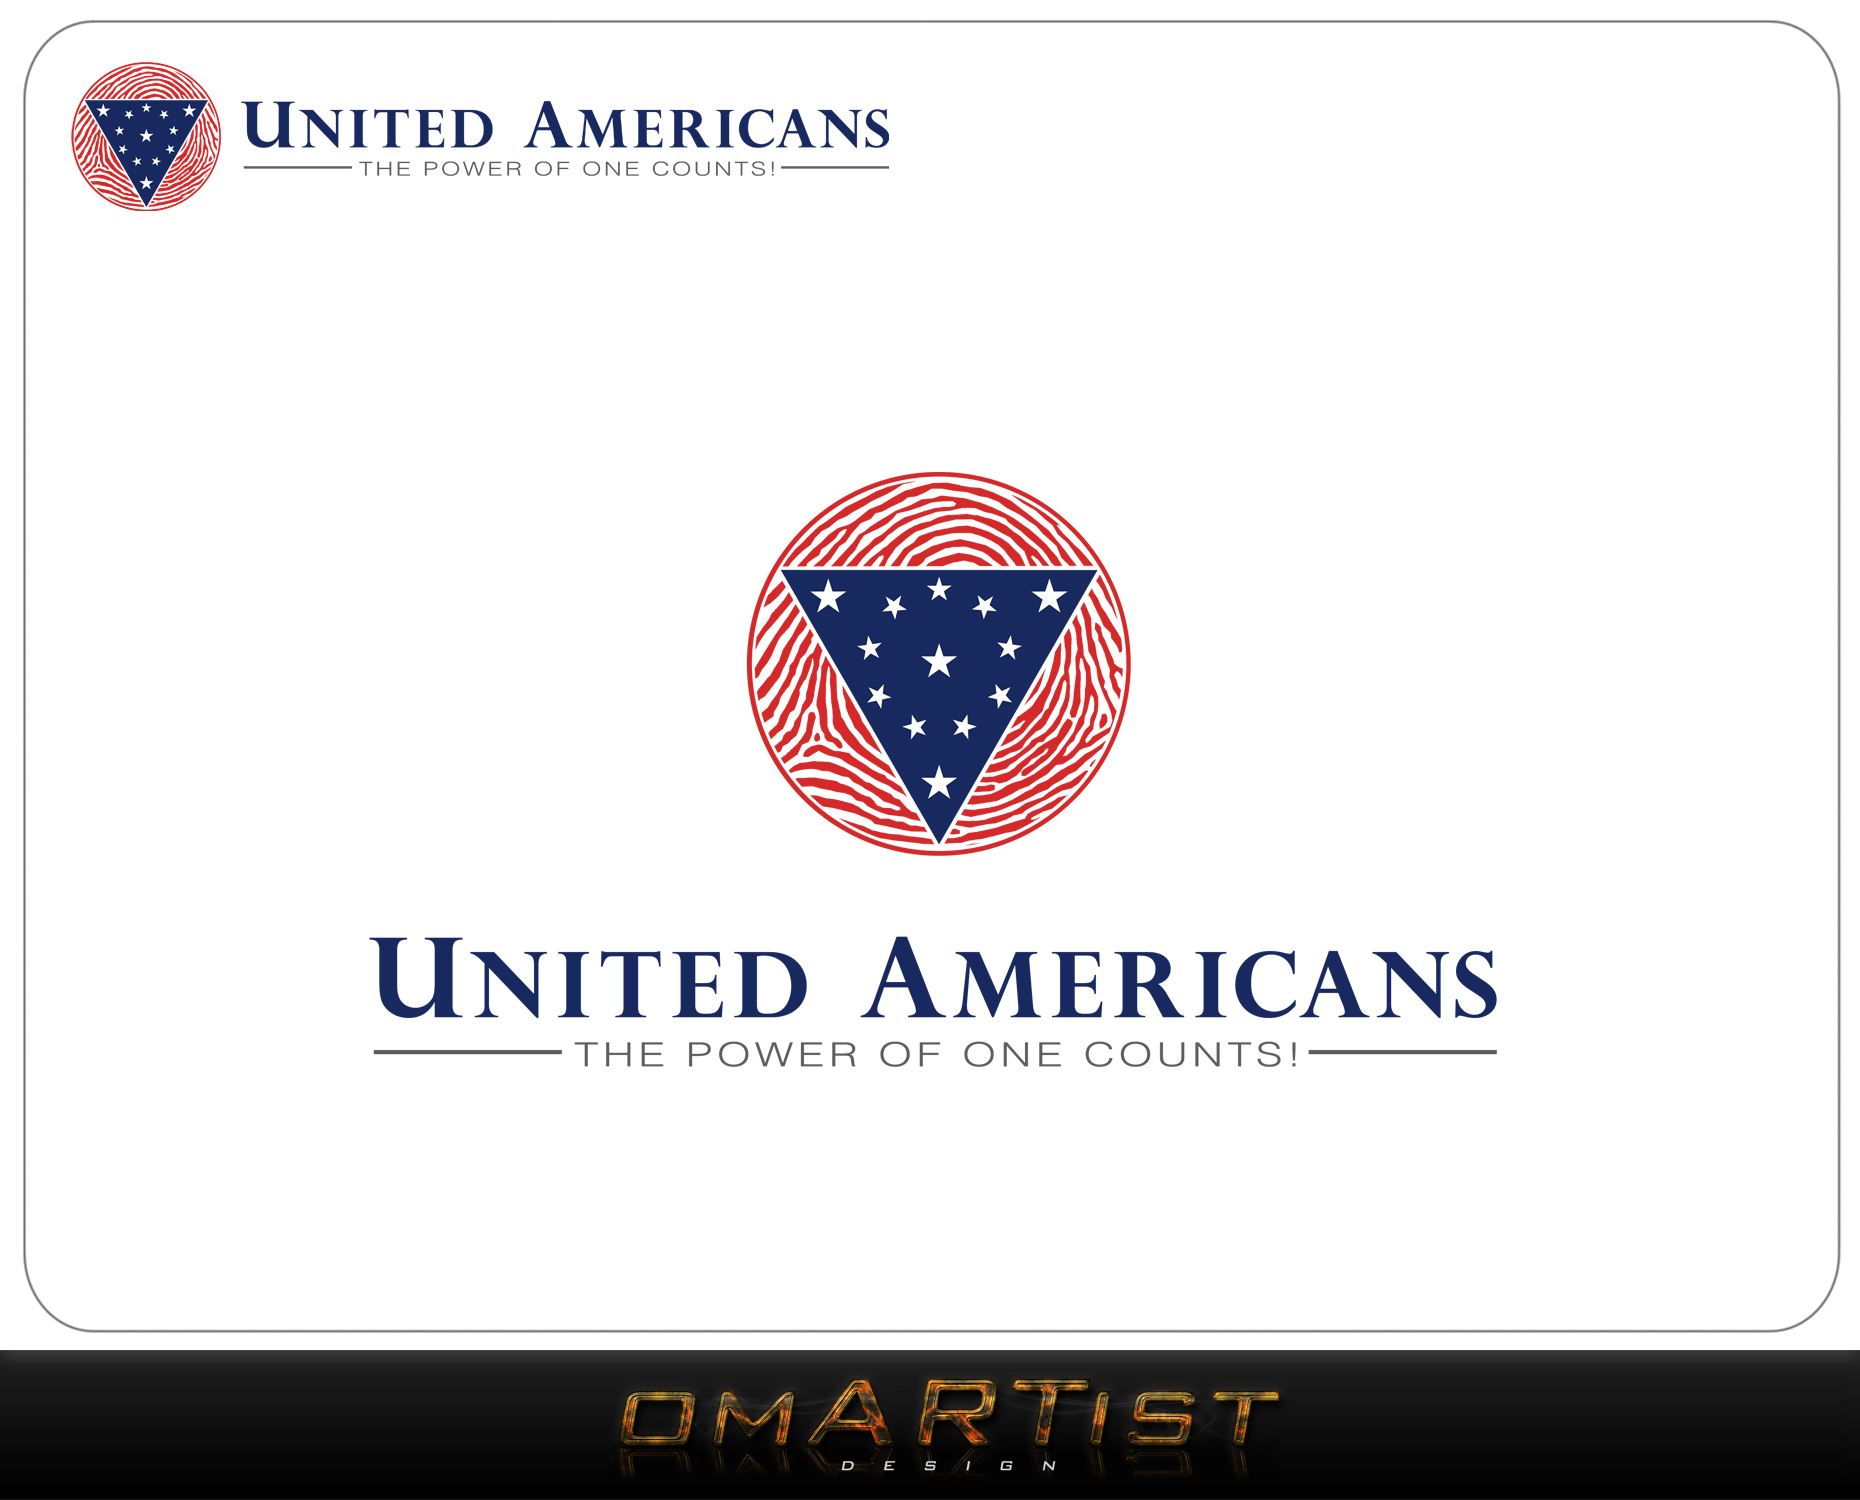 Logo Design by omARTist - Entry No. 84 in the Logo Design Contest Creative Logo Design for United Americans.